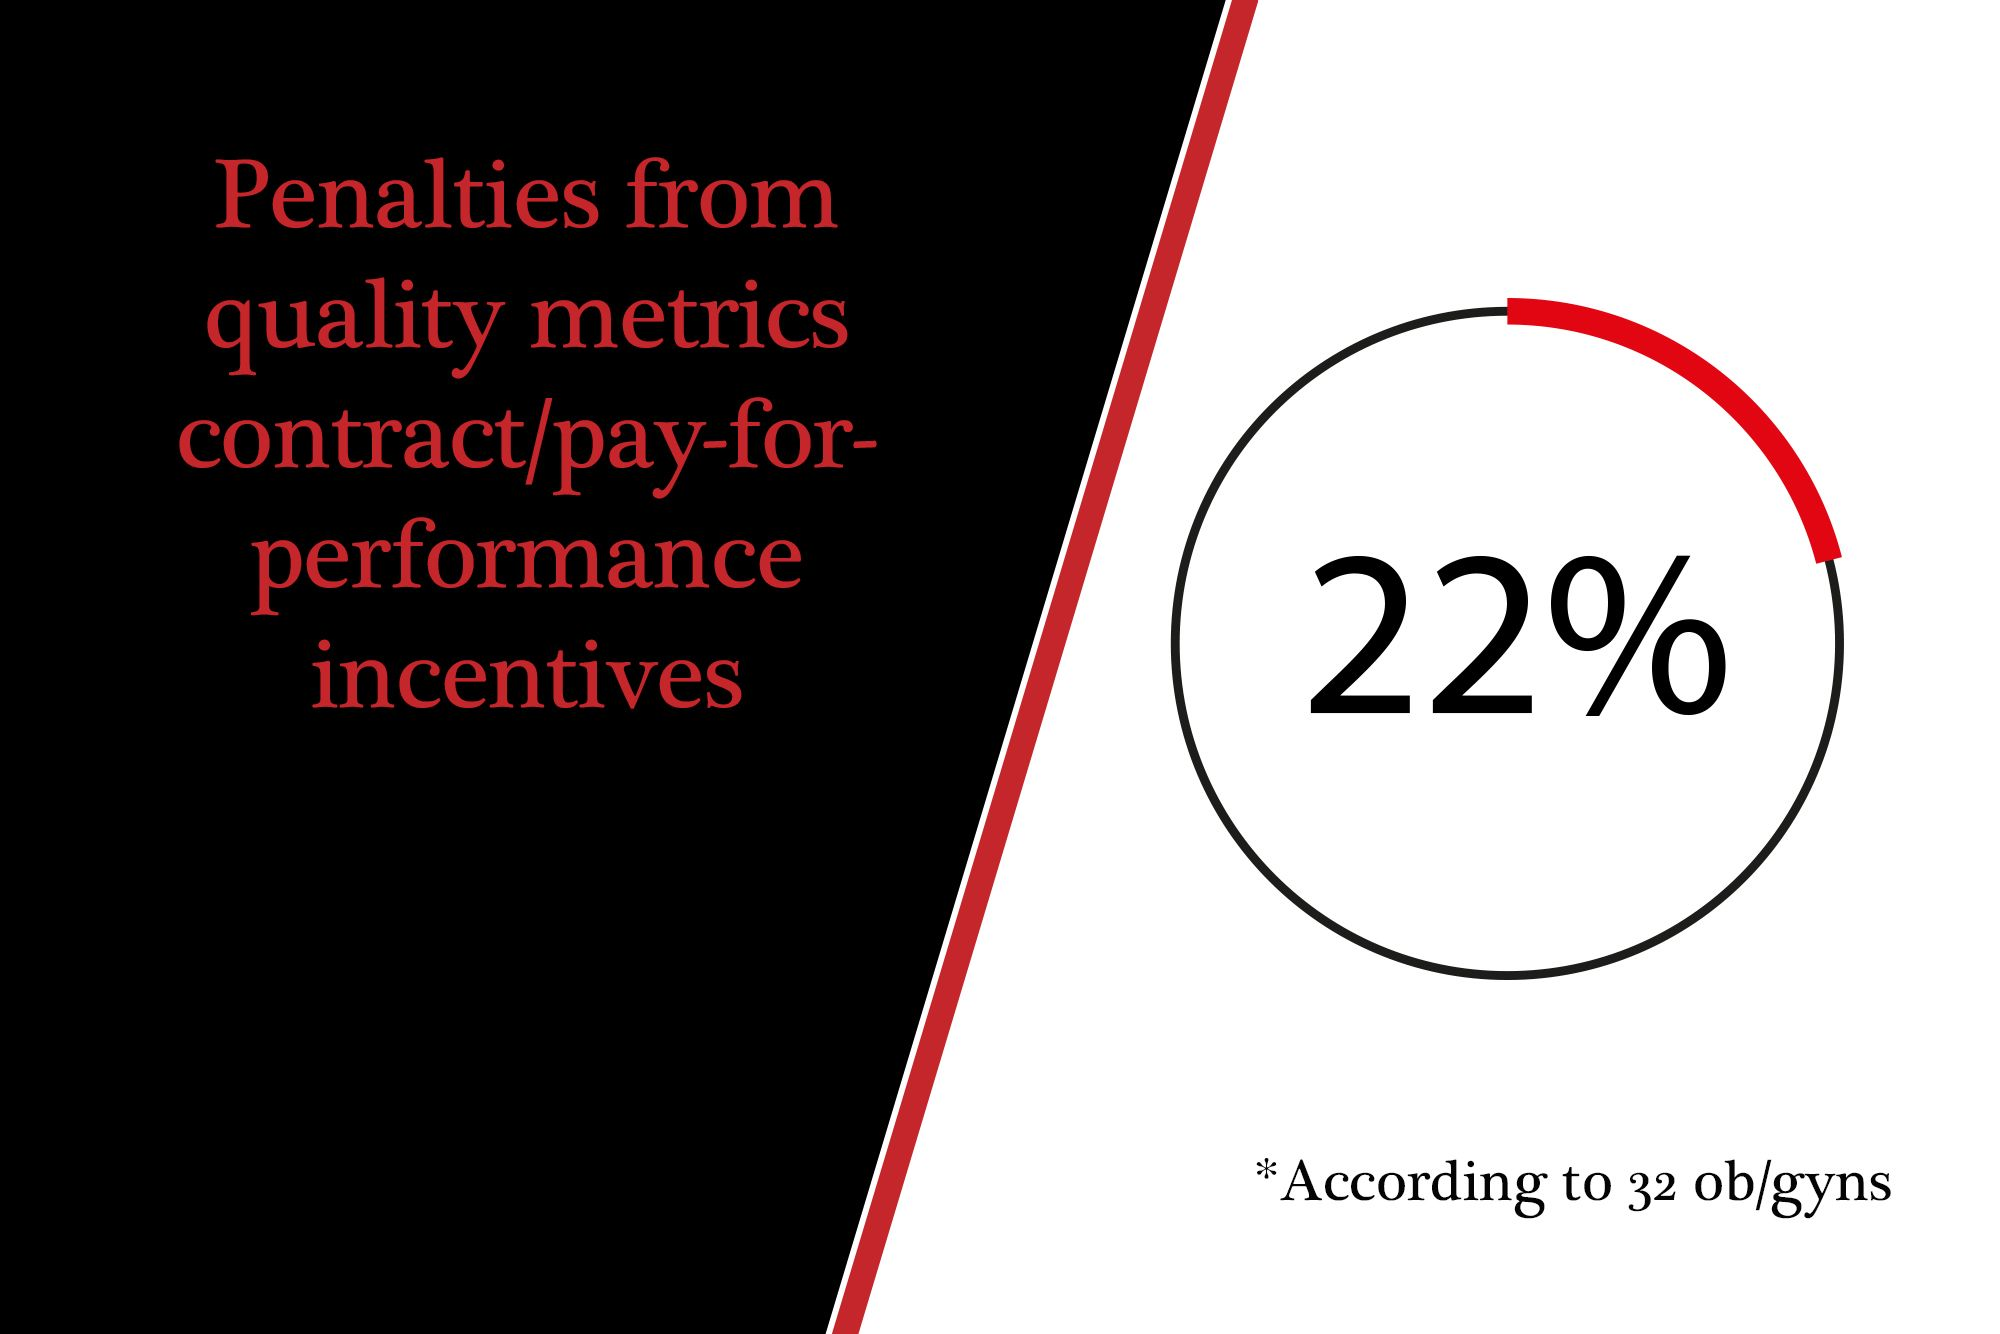 Penalties from quality metrics contract/pay for performance initiatives